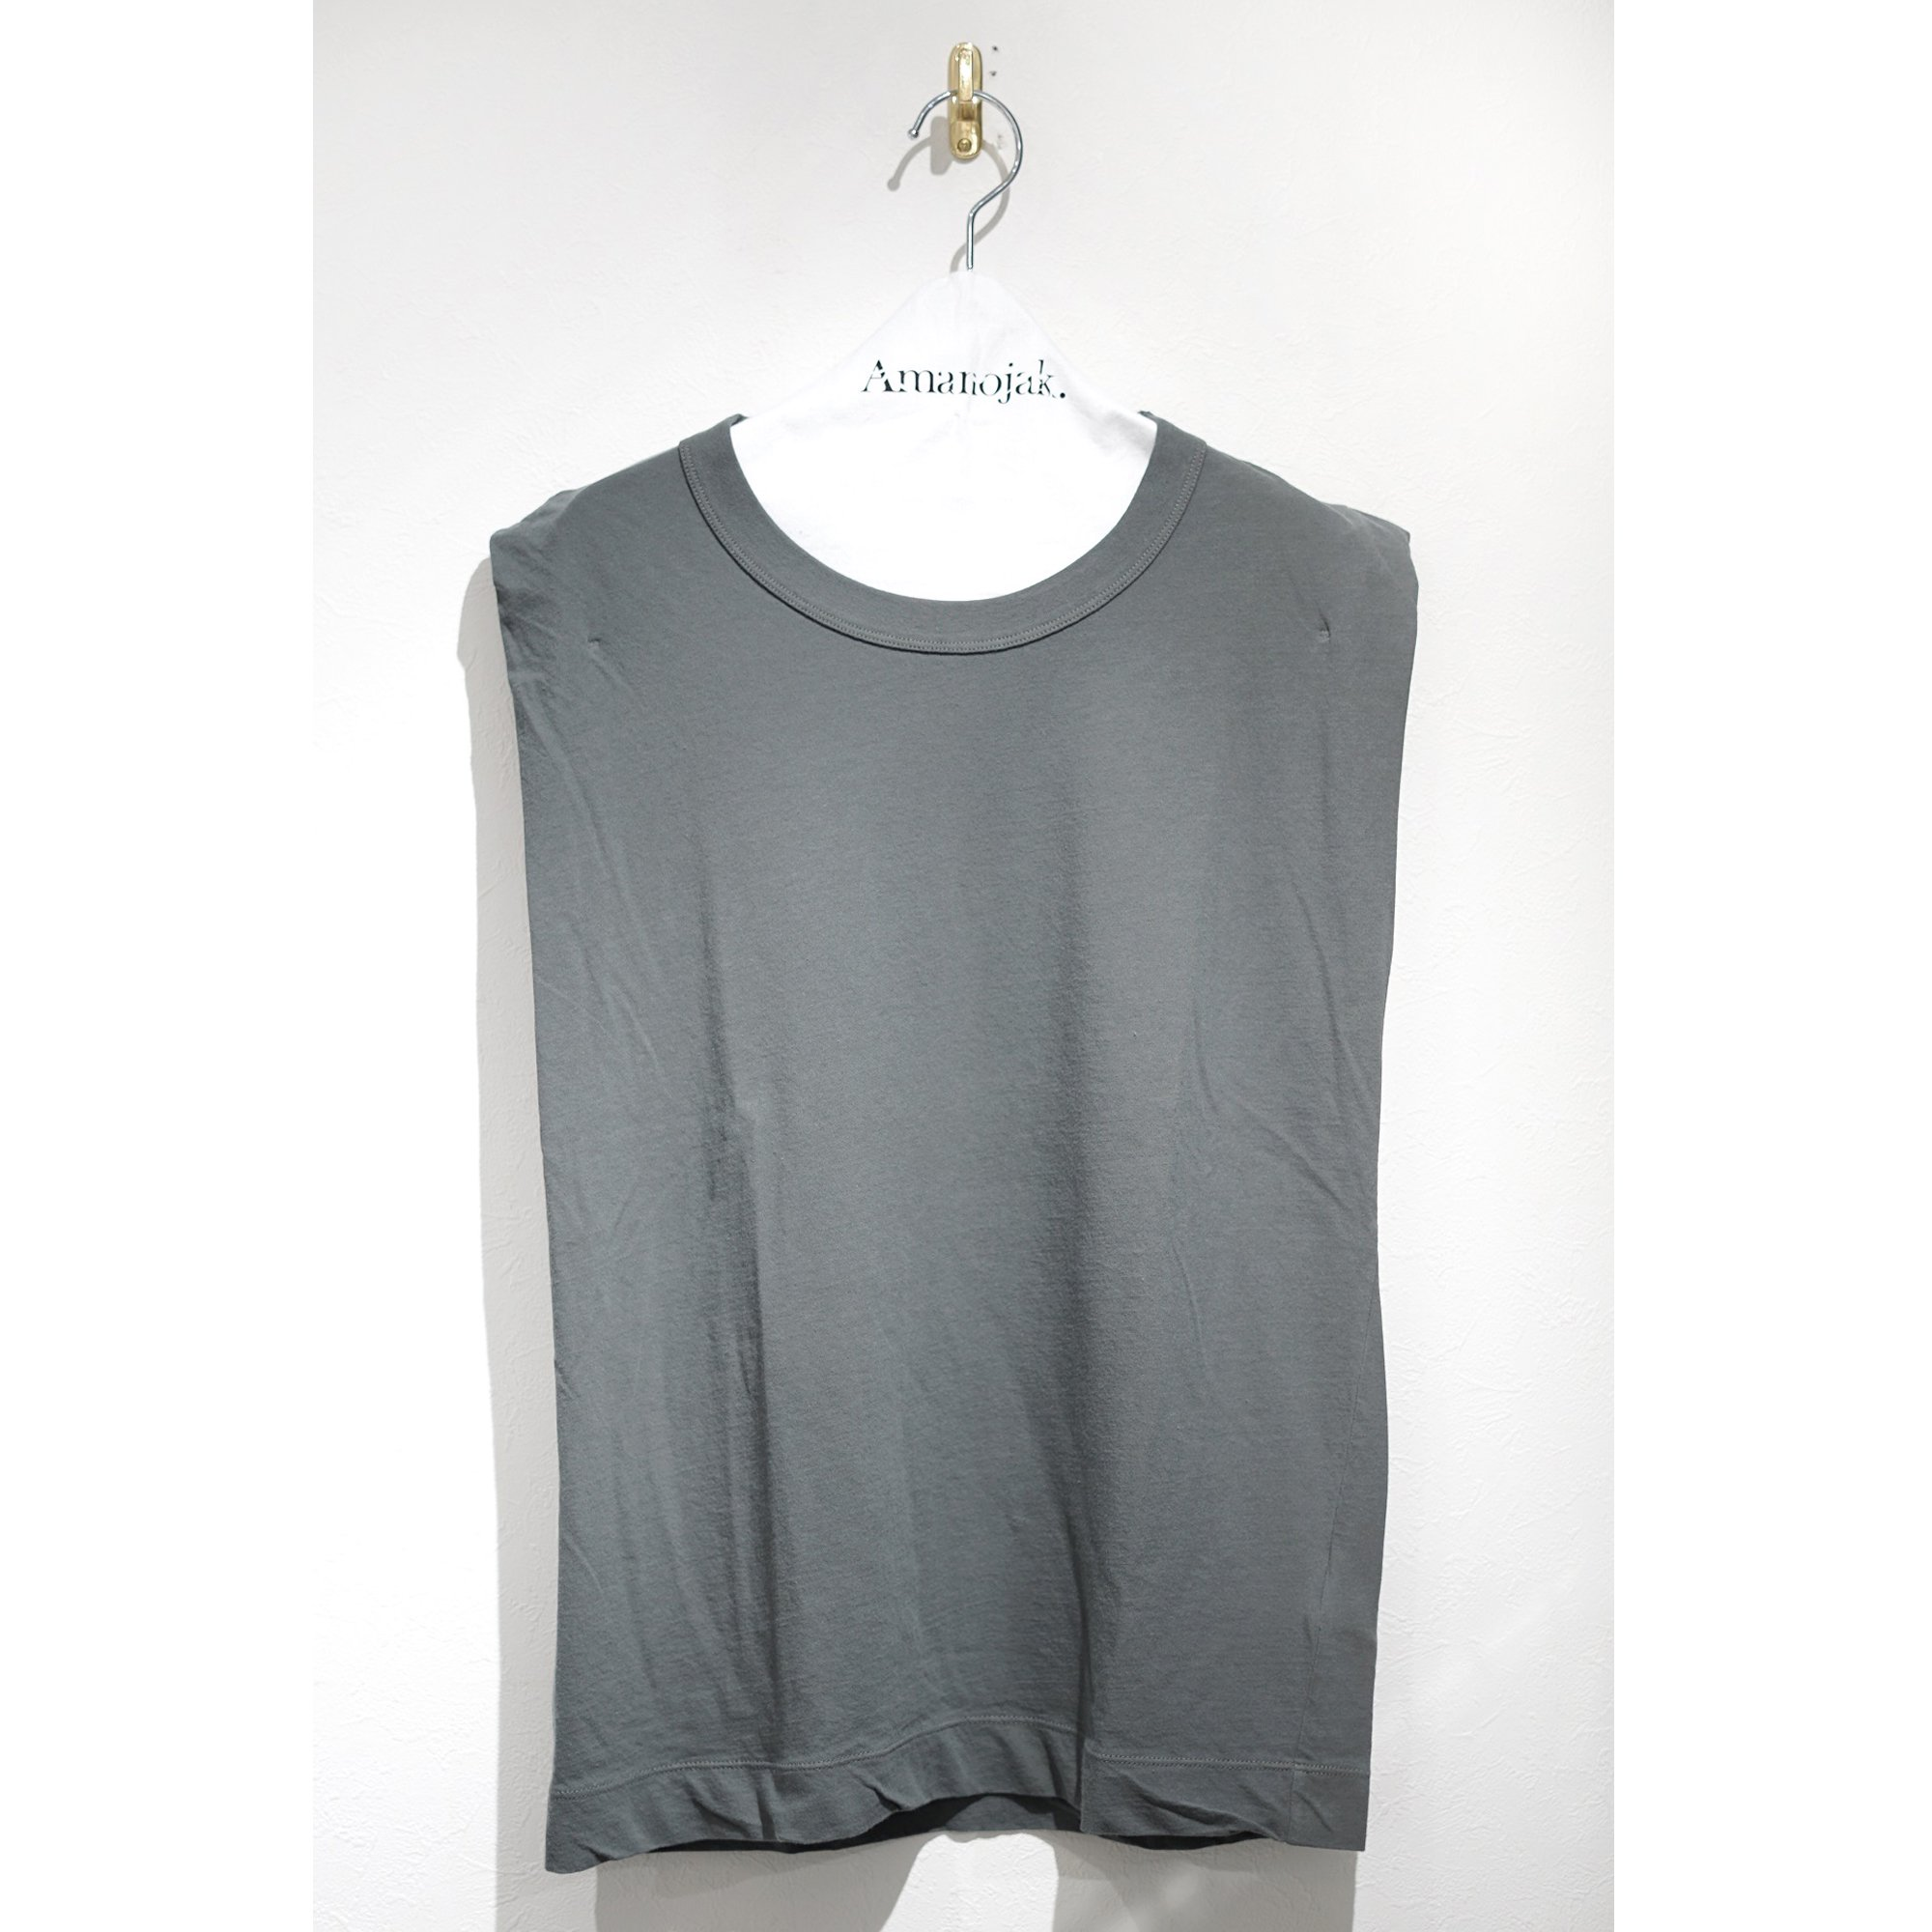 ATON-FRESCA TANK TOP CHARCOAL GREY